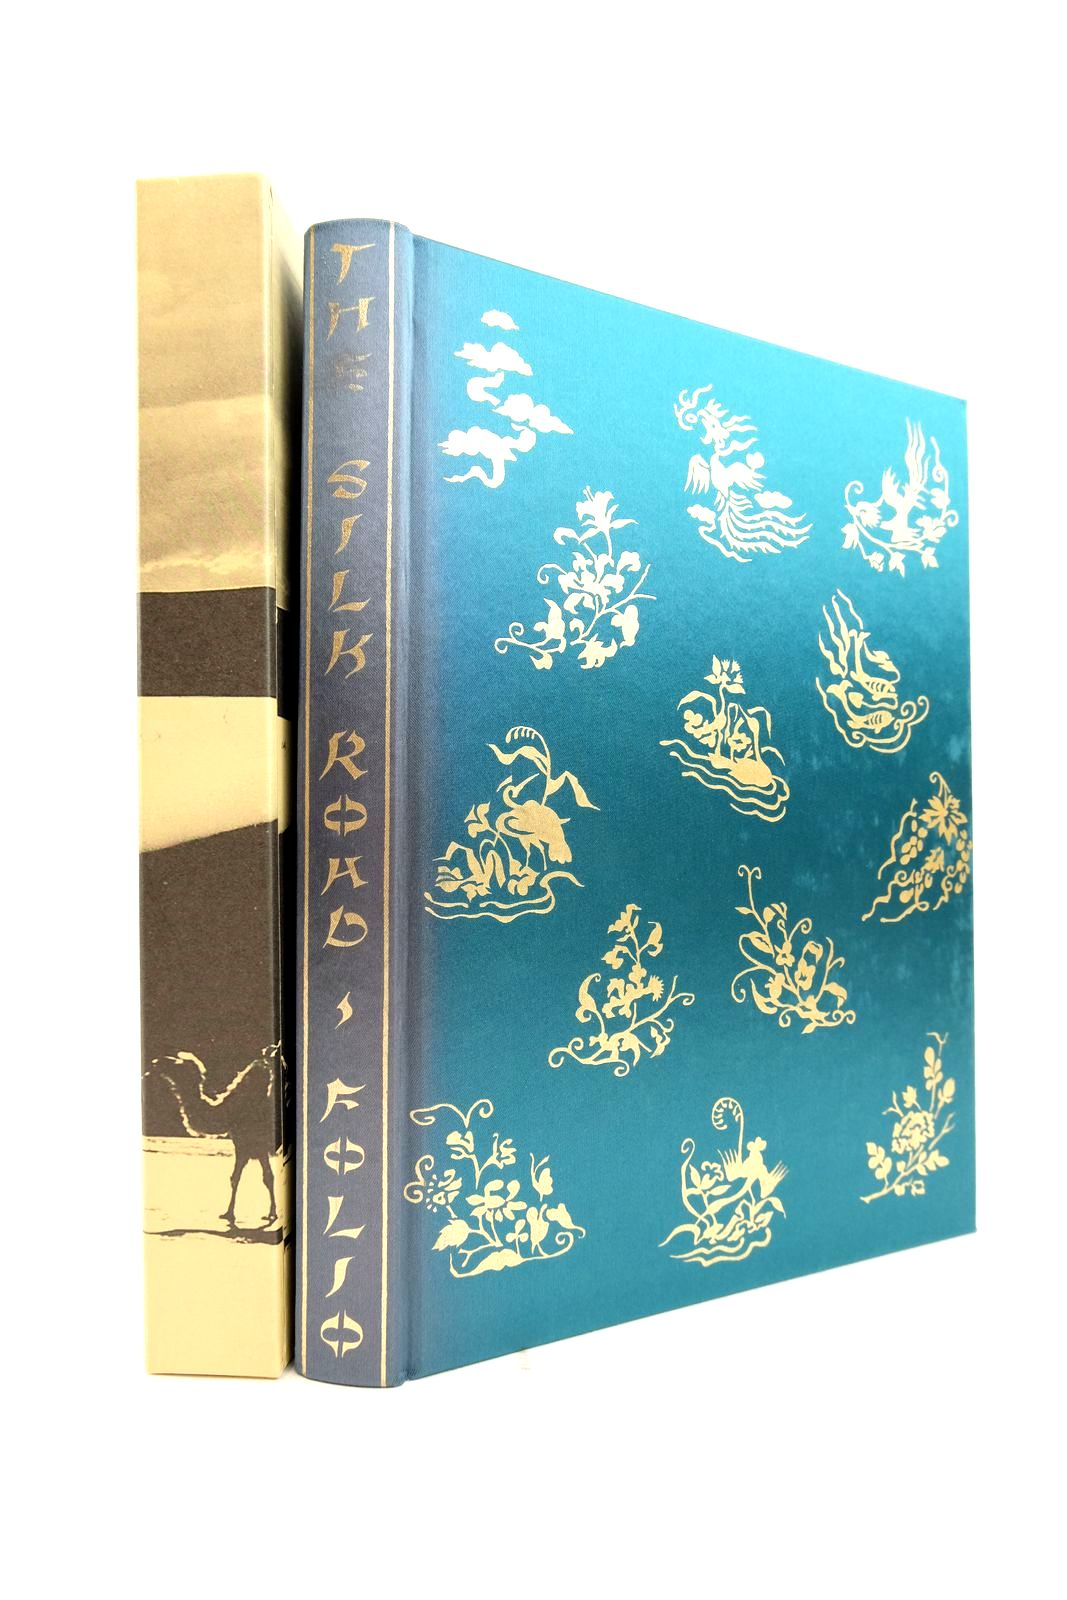 Photo of THE SILK ROAD written by Wood, Frances published by Folio Society (STOCK CODE: 2134557)  for sale by Stella & Rose's Books